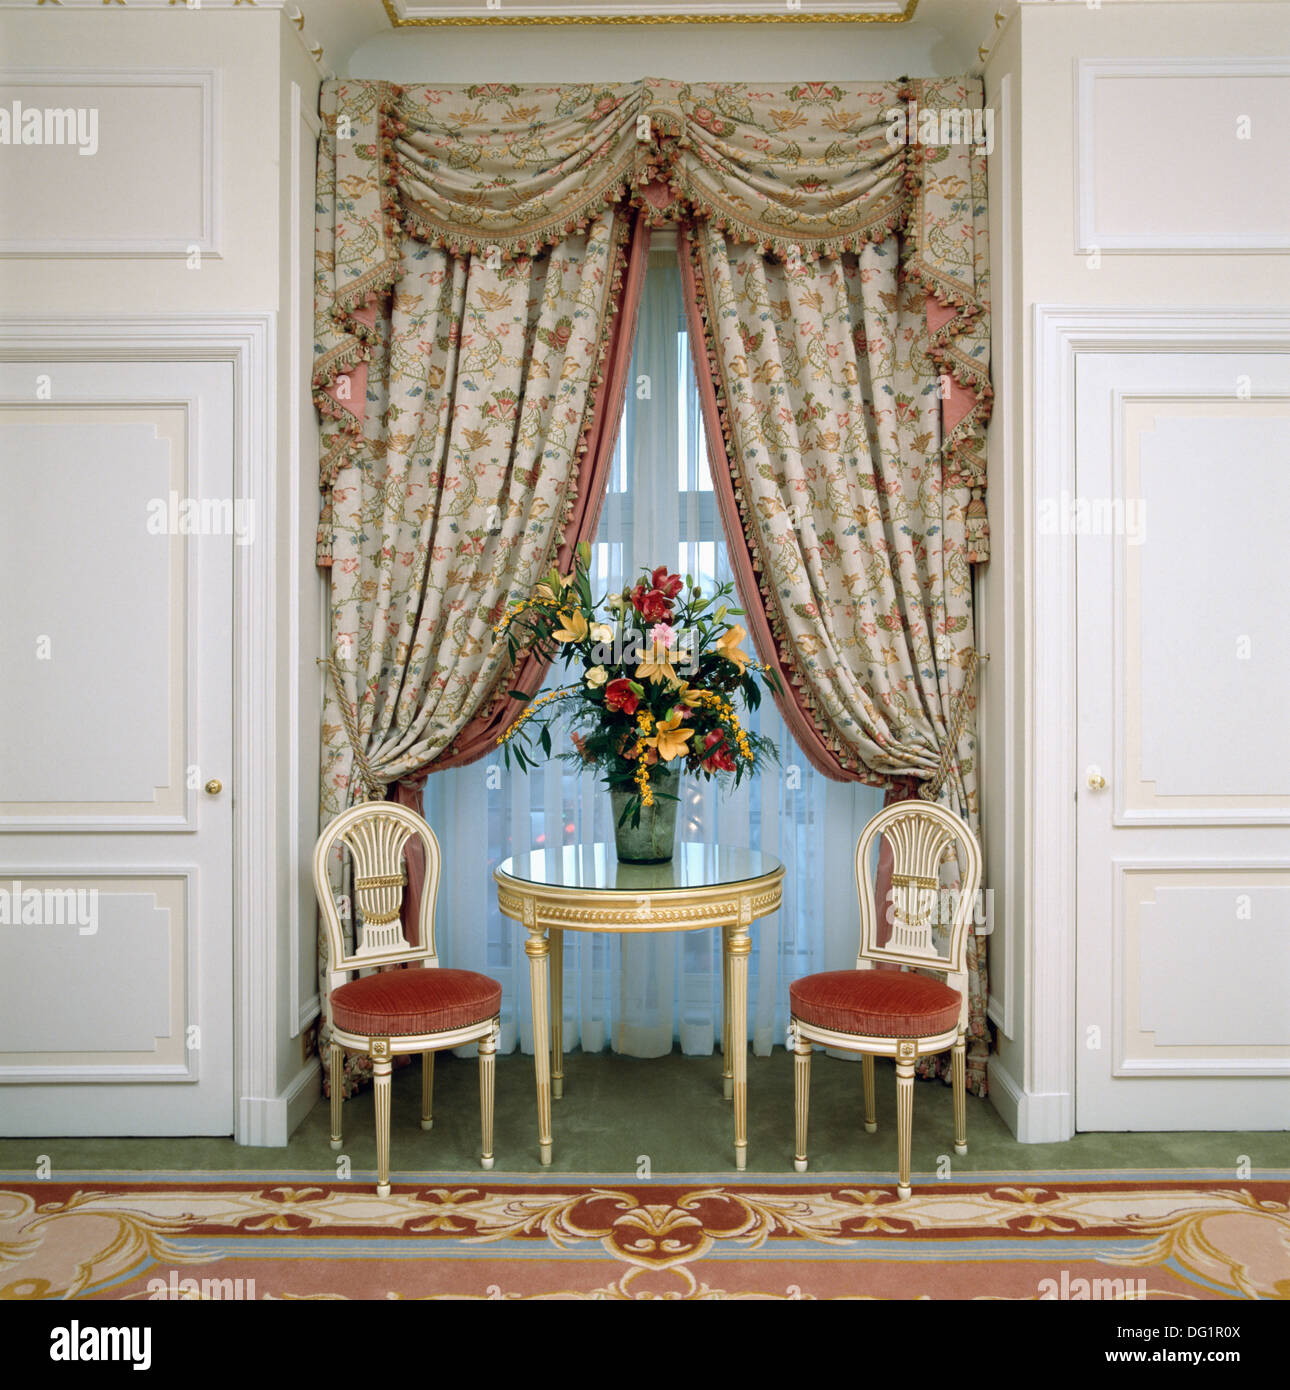 shades of choose online valances s drapes direct stock from roman in hotel to unlimited regal fabrics styles ws hp custom